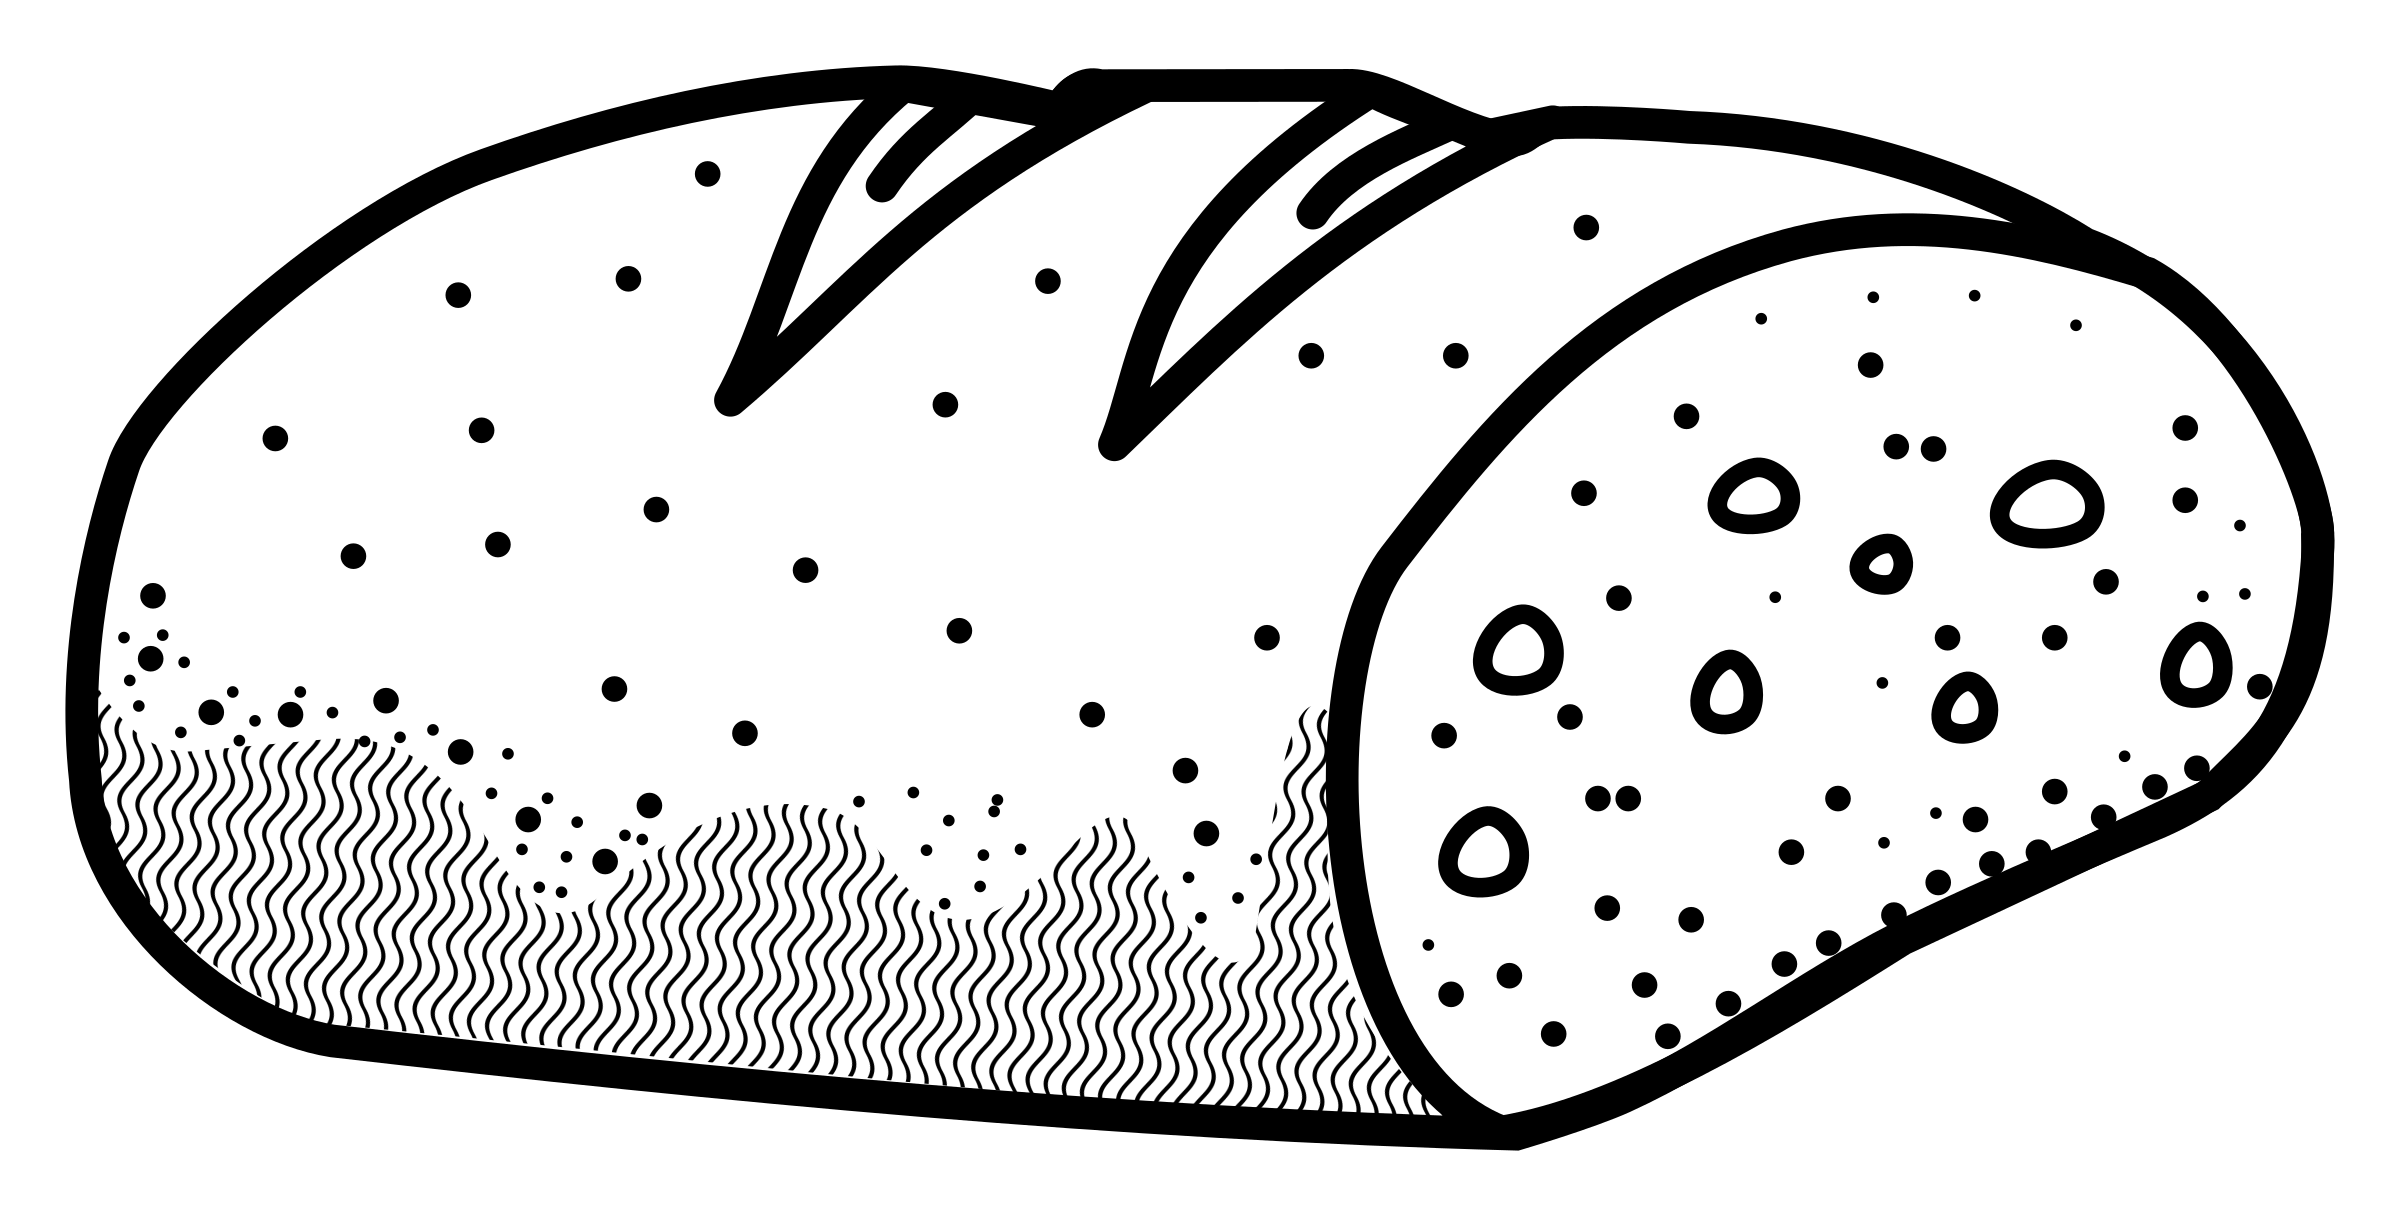 png freeuse library Log black and white clipart. Bread wallpaper free on